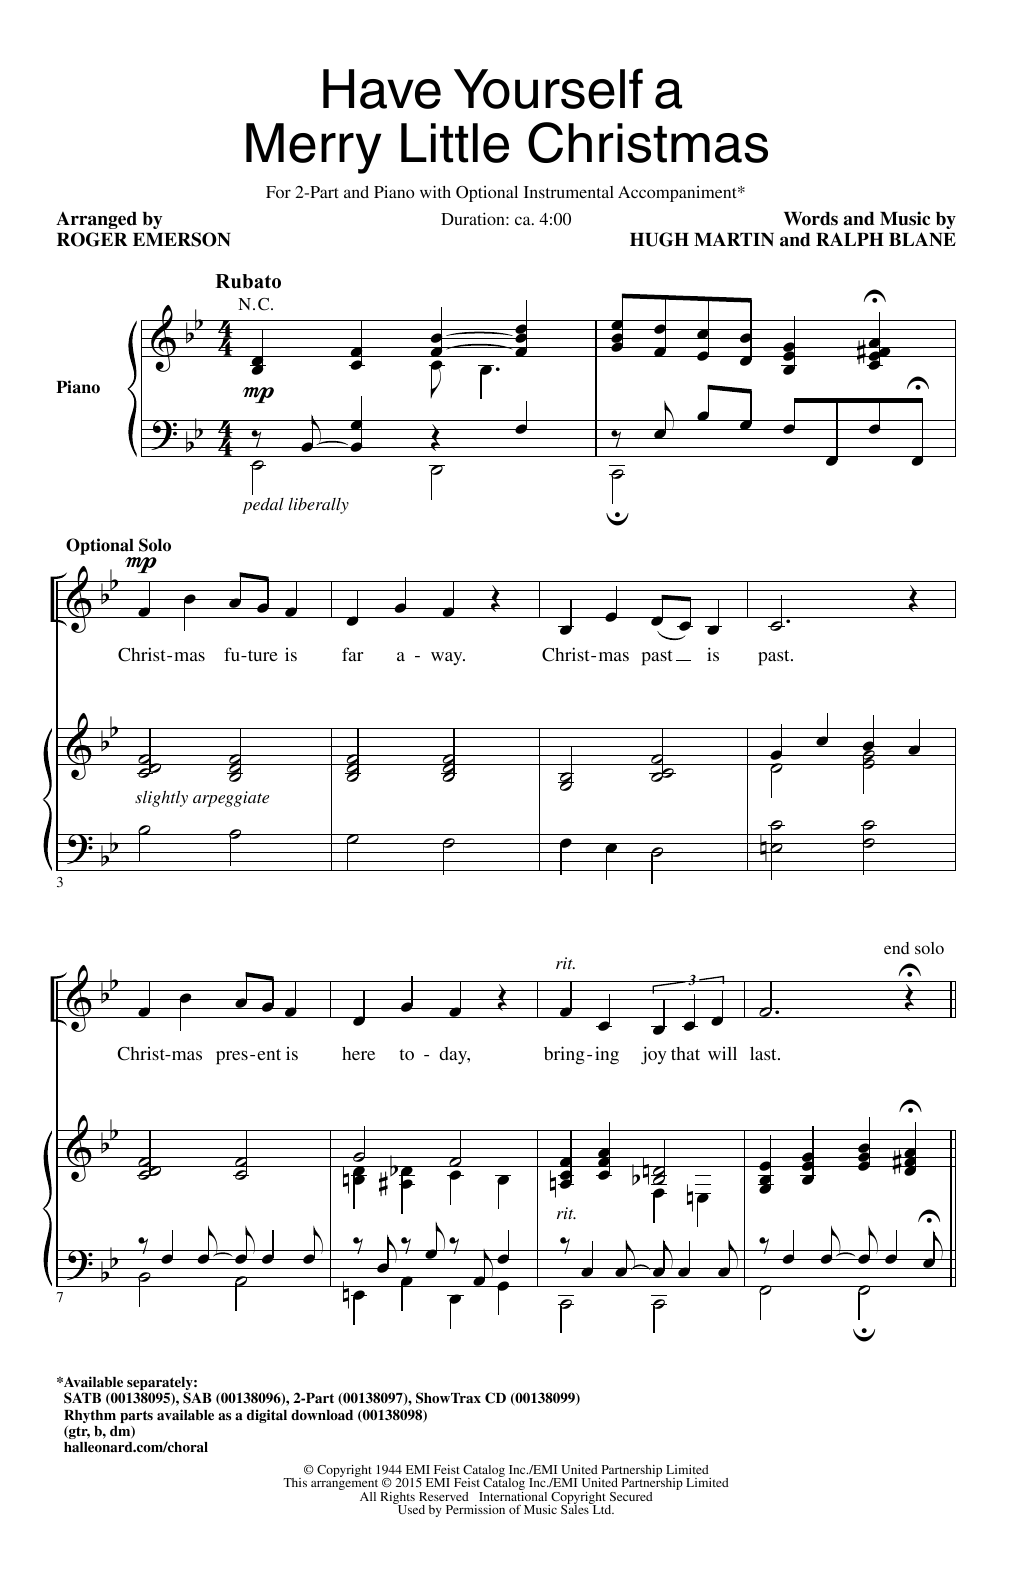 Have Yourself A Merry Little Christmas Lead Sheet.Have Yourself A Merry Little Christmas By Roger Emerson 2 Part Choir Digital Sheet Music